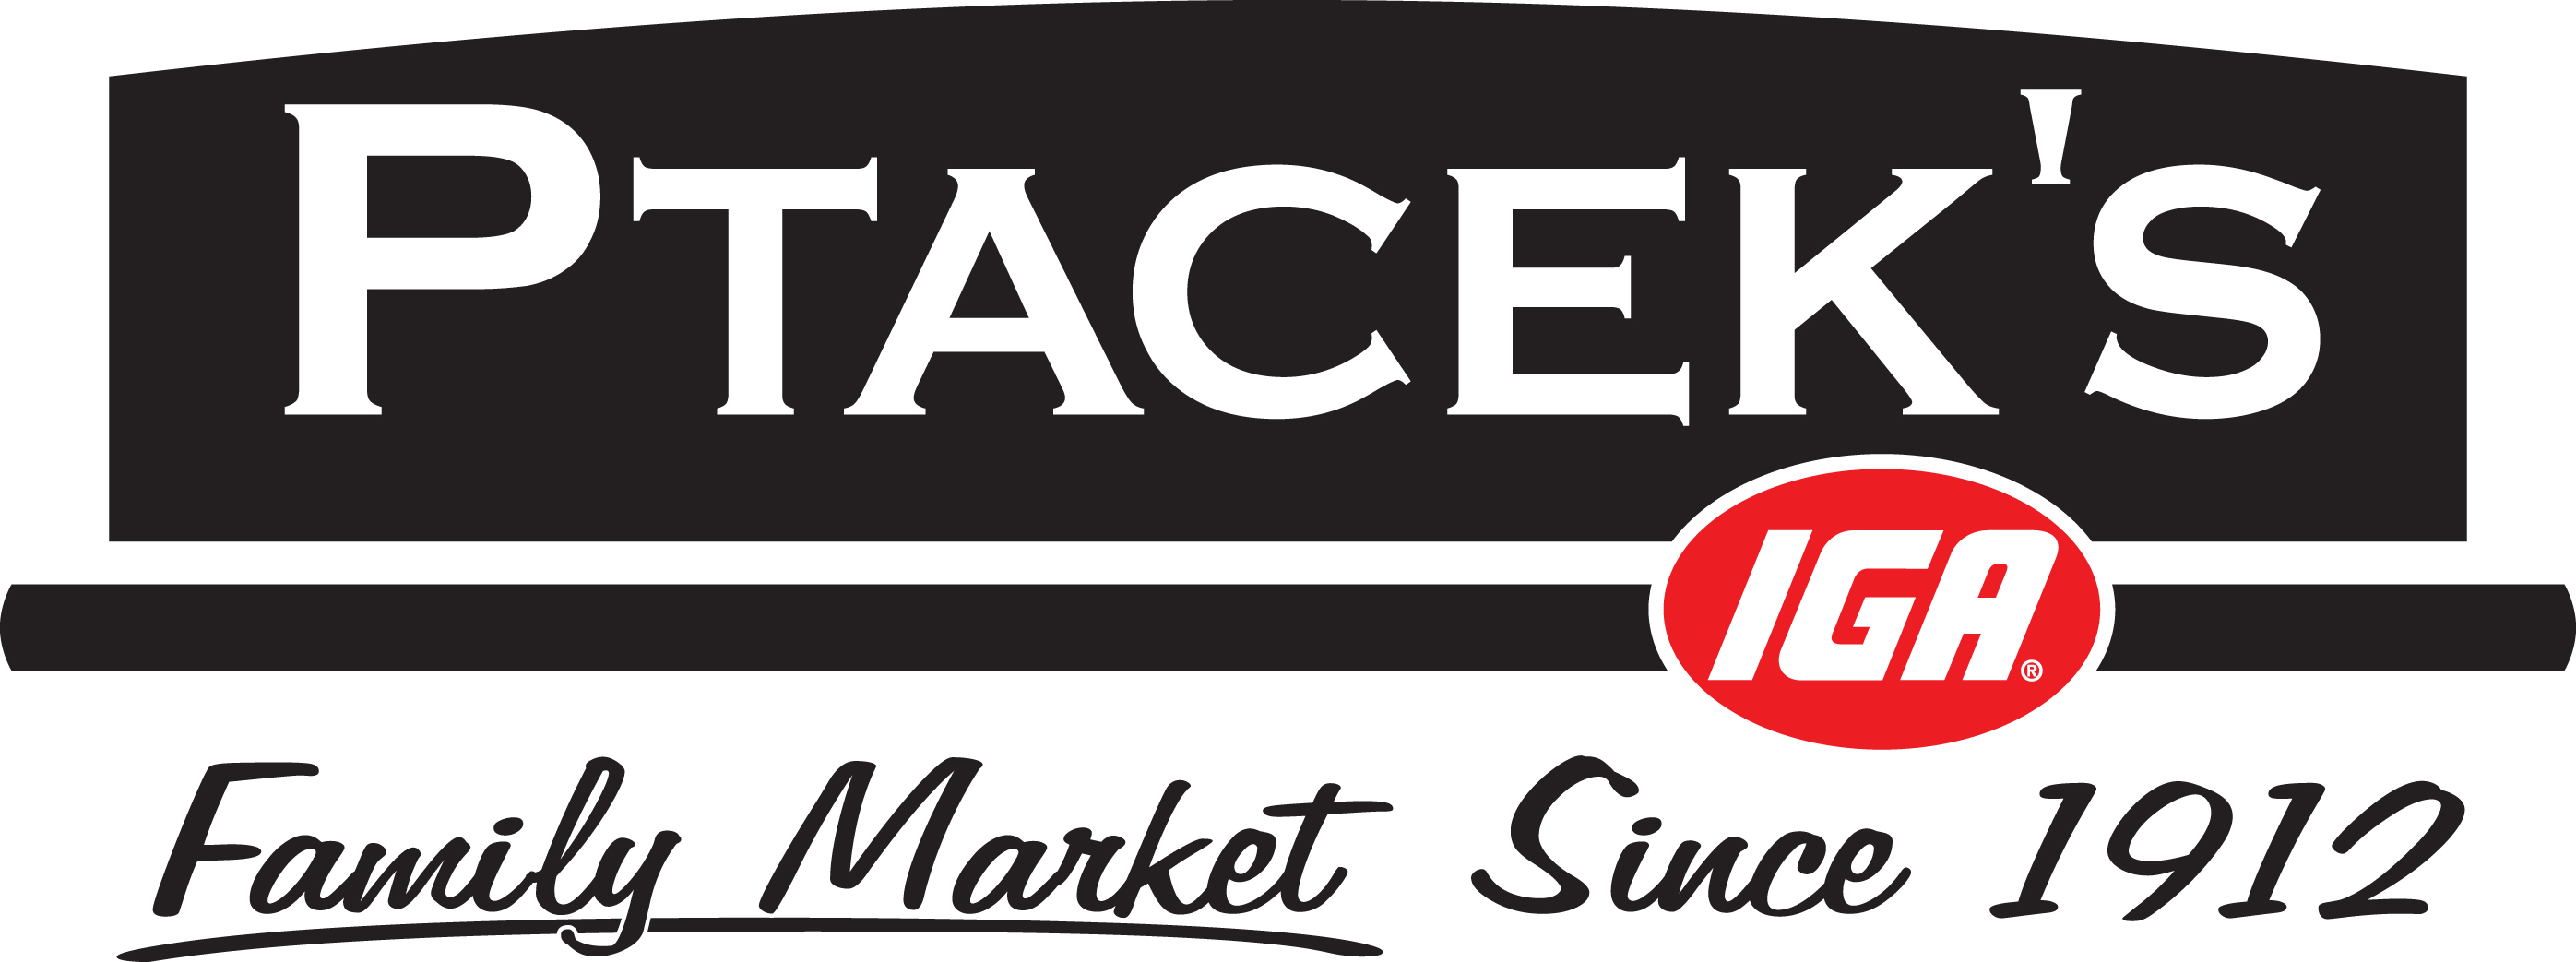 Ptaceks IGA